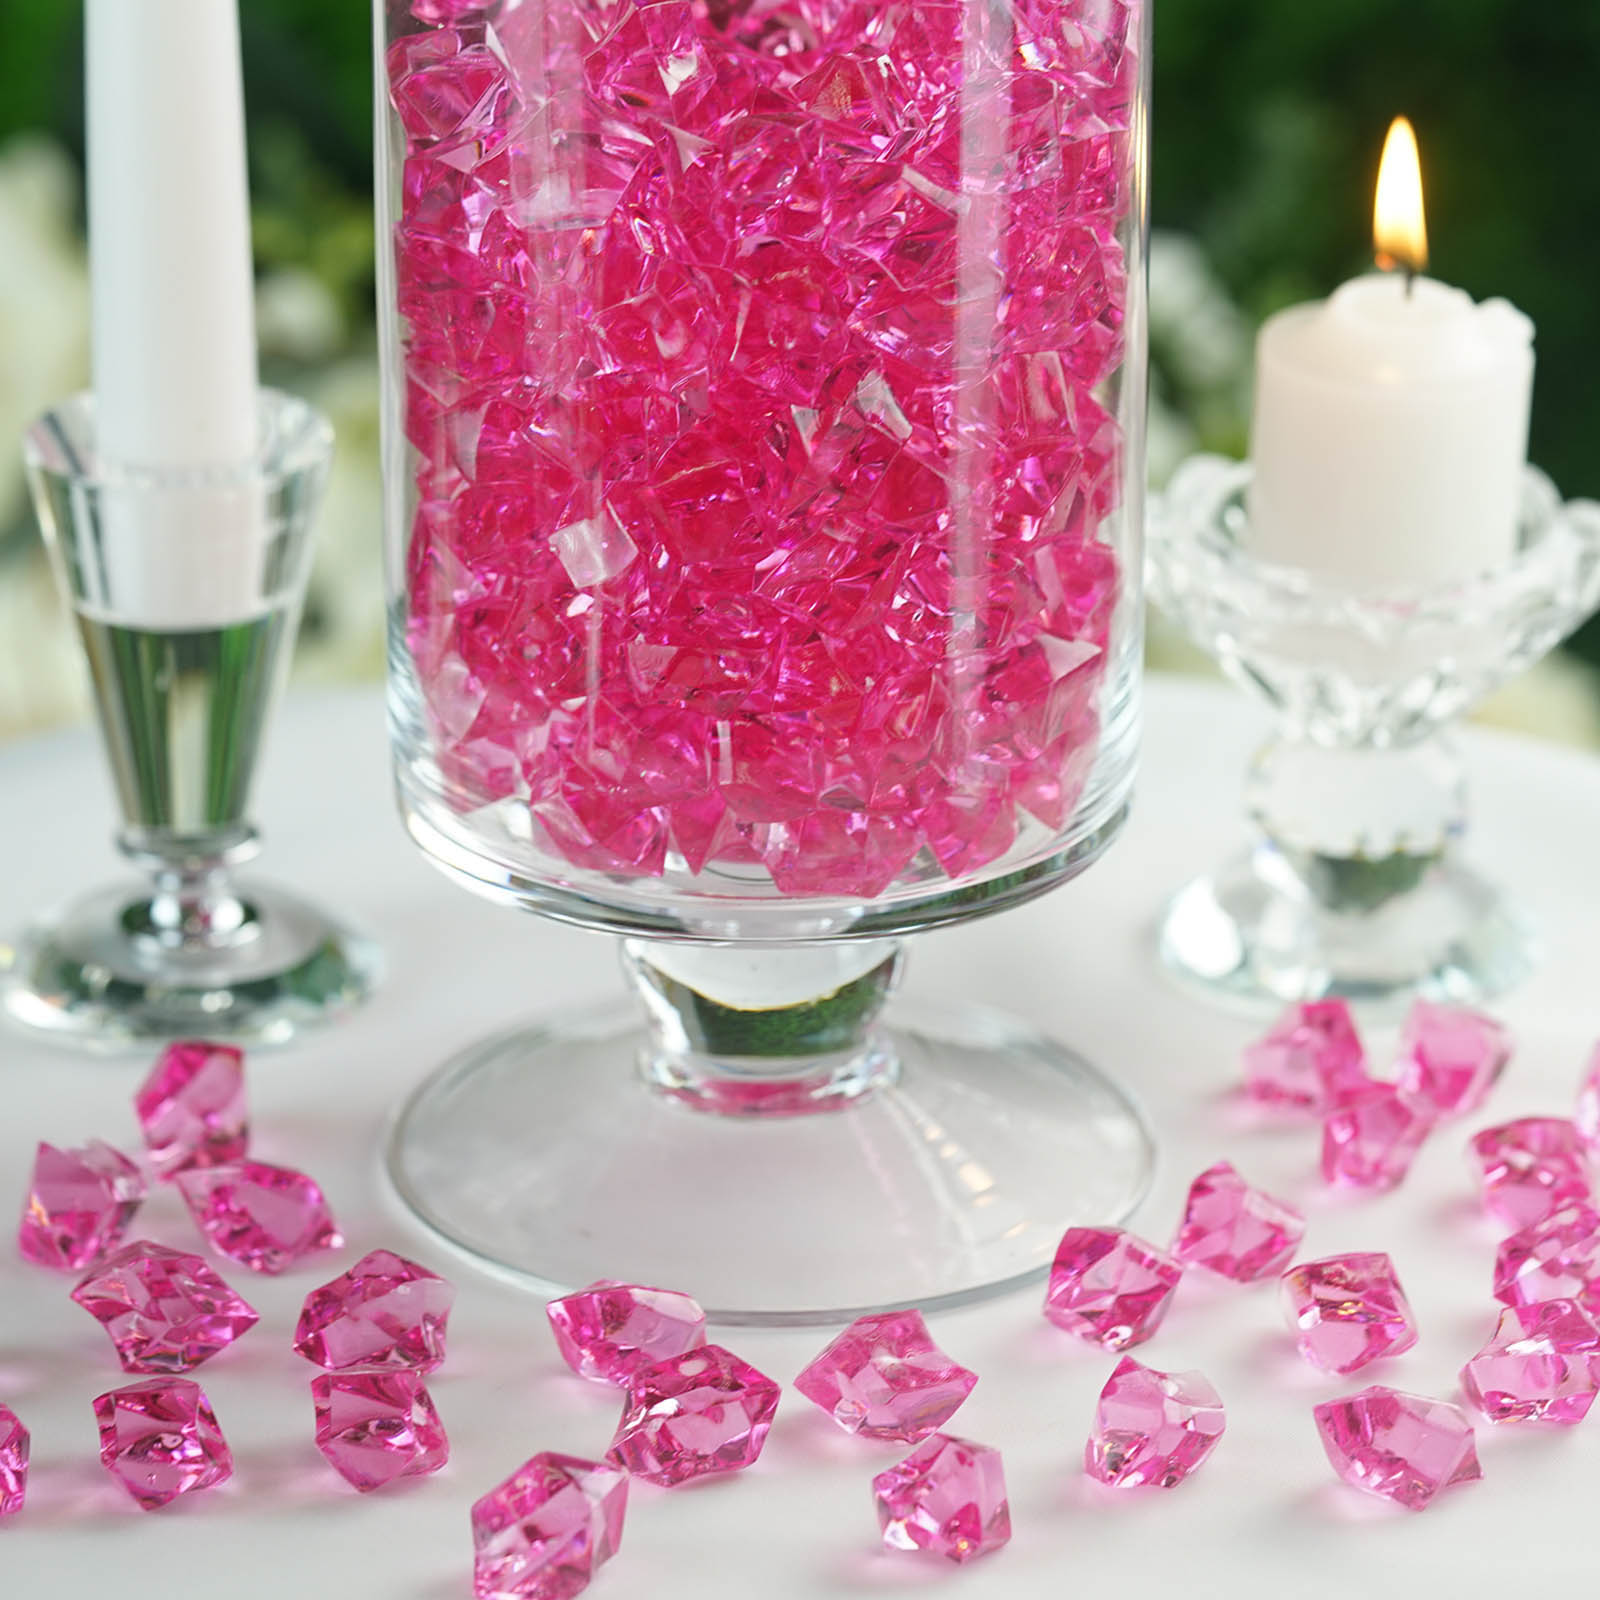 300-Acrylic-Ice-CRYSTAL-LIKE-Pieces-Wedding-Centerpieces-Decorations-Supplies thumbnail 30